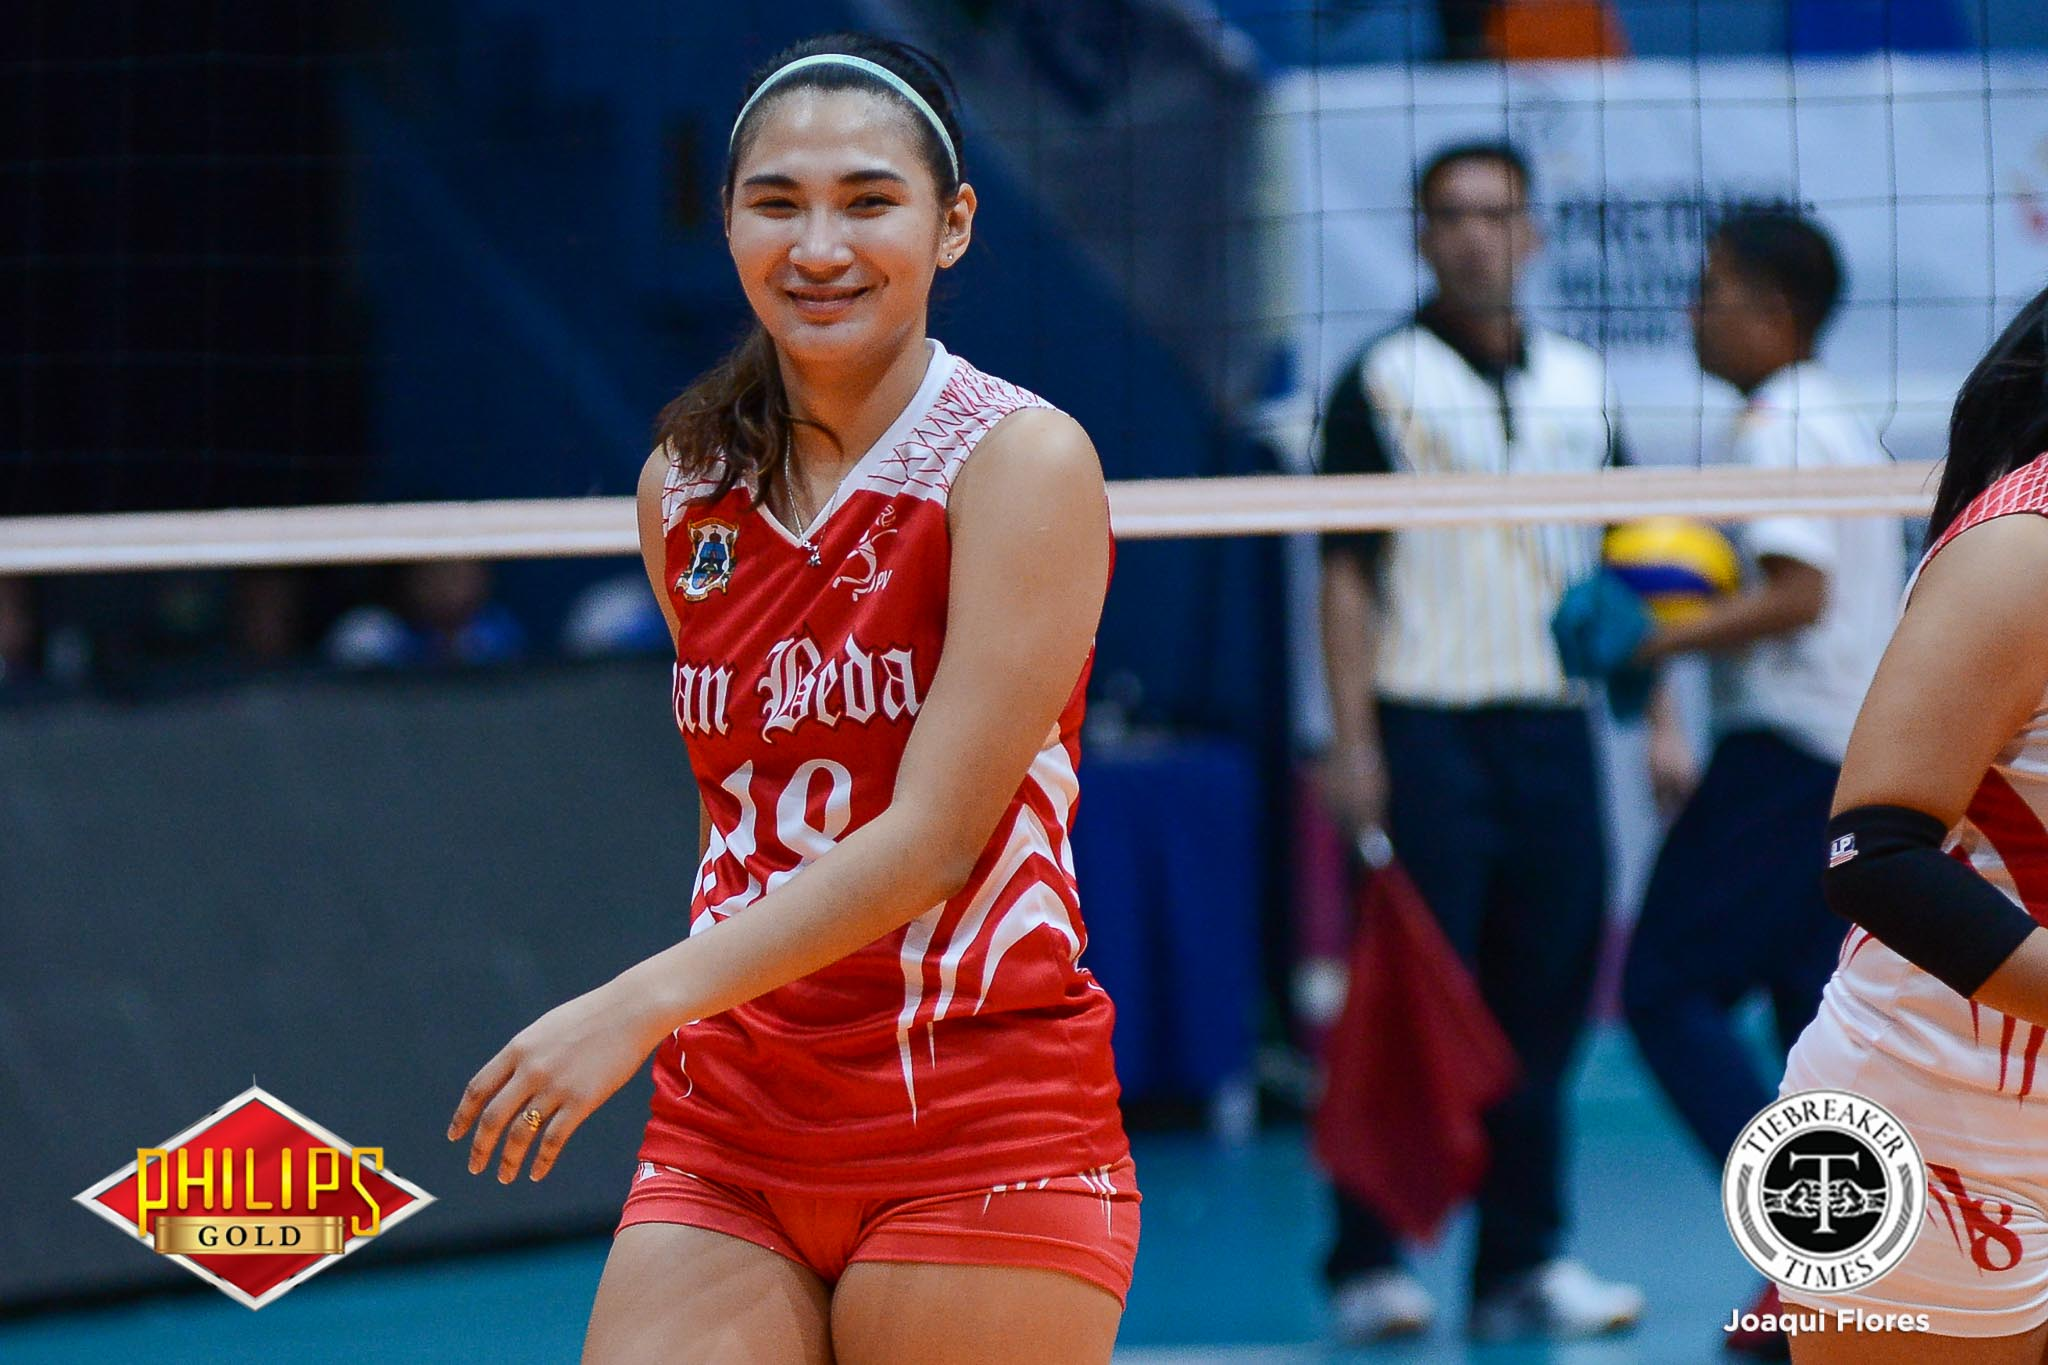 Tiebreaker Times San Beda Lady Red Spikers barge into third straight Final Four CSB JRU NCAA News SBC SSC-R Volleyball  Trisha Paras San Sebastian Women's Volleyball San Beda Women's Volleyball Saint Benilde Women's Volleyball Roger Gorayeb Nieza Viray Nemesio Gavino Jr. NCAA Season 94 Women's Vollleyball NCAA Season 94 Mia Tioseco Melanie Torres Klarisa Abriam JRU Women's Volleyball Joyce Sta. Rita Jerry Yee Jan Arianne Daguil Dolly Versoza Daryl Racraquin Cesca Racraquin